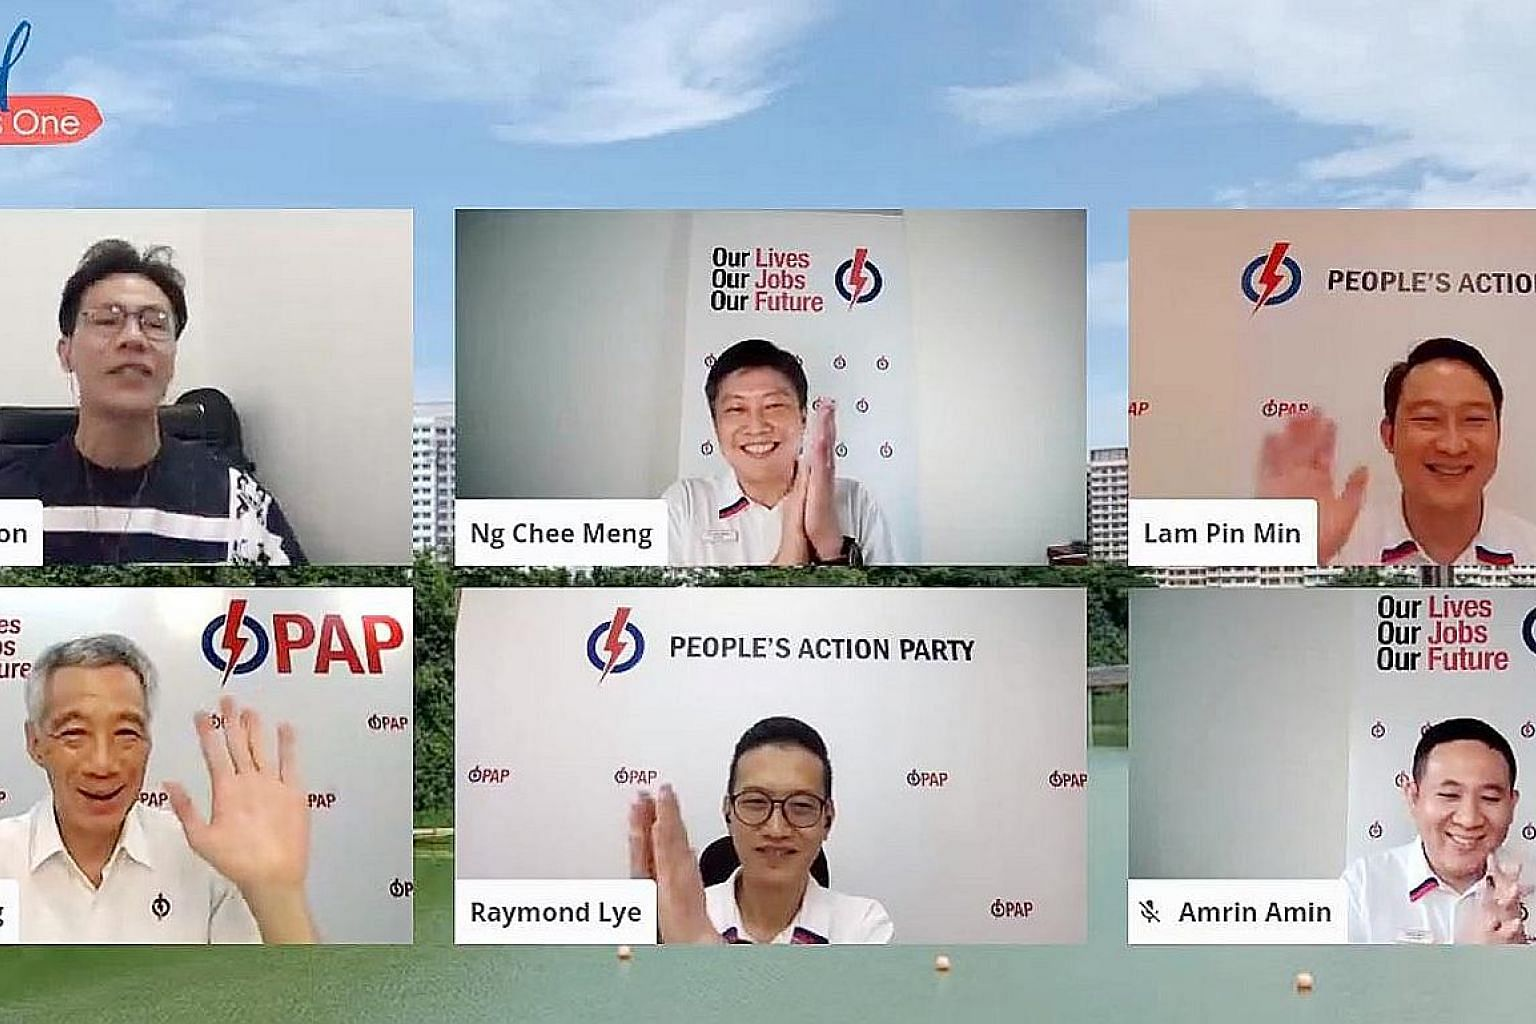 Prime Minister Lee Hsien Loong joined the PAP team for Sengkang GRC - (clockwise from top centre) Mr Ng Chee Meng, Dr Lam Pin Min, Mr Amrin Amin and Mr Raymond Lye - in a webinar on the party's plans for the constituency yesterday. The session was ho